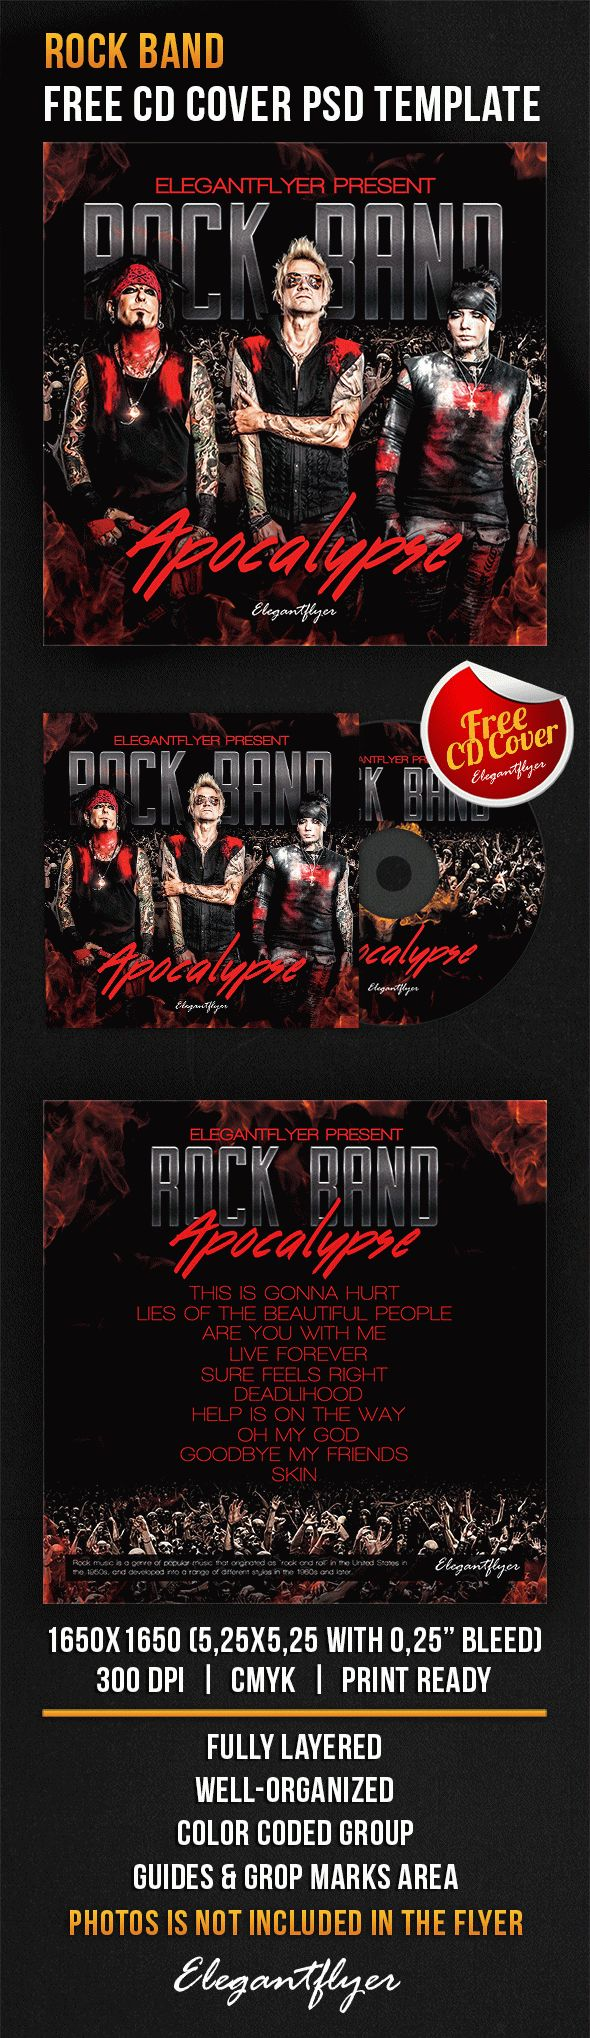 Rock Band – Free CD Cover PSD Template